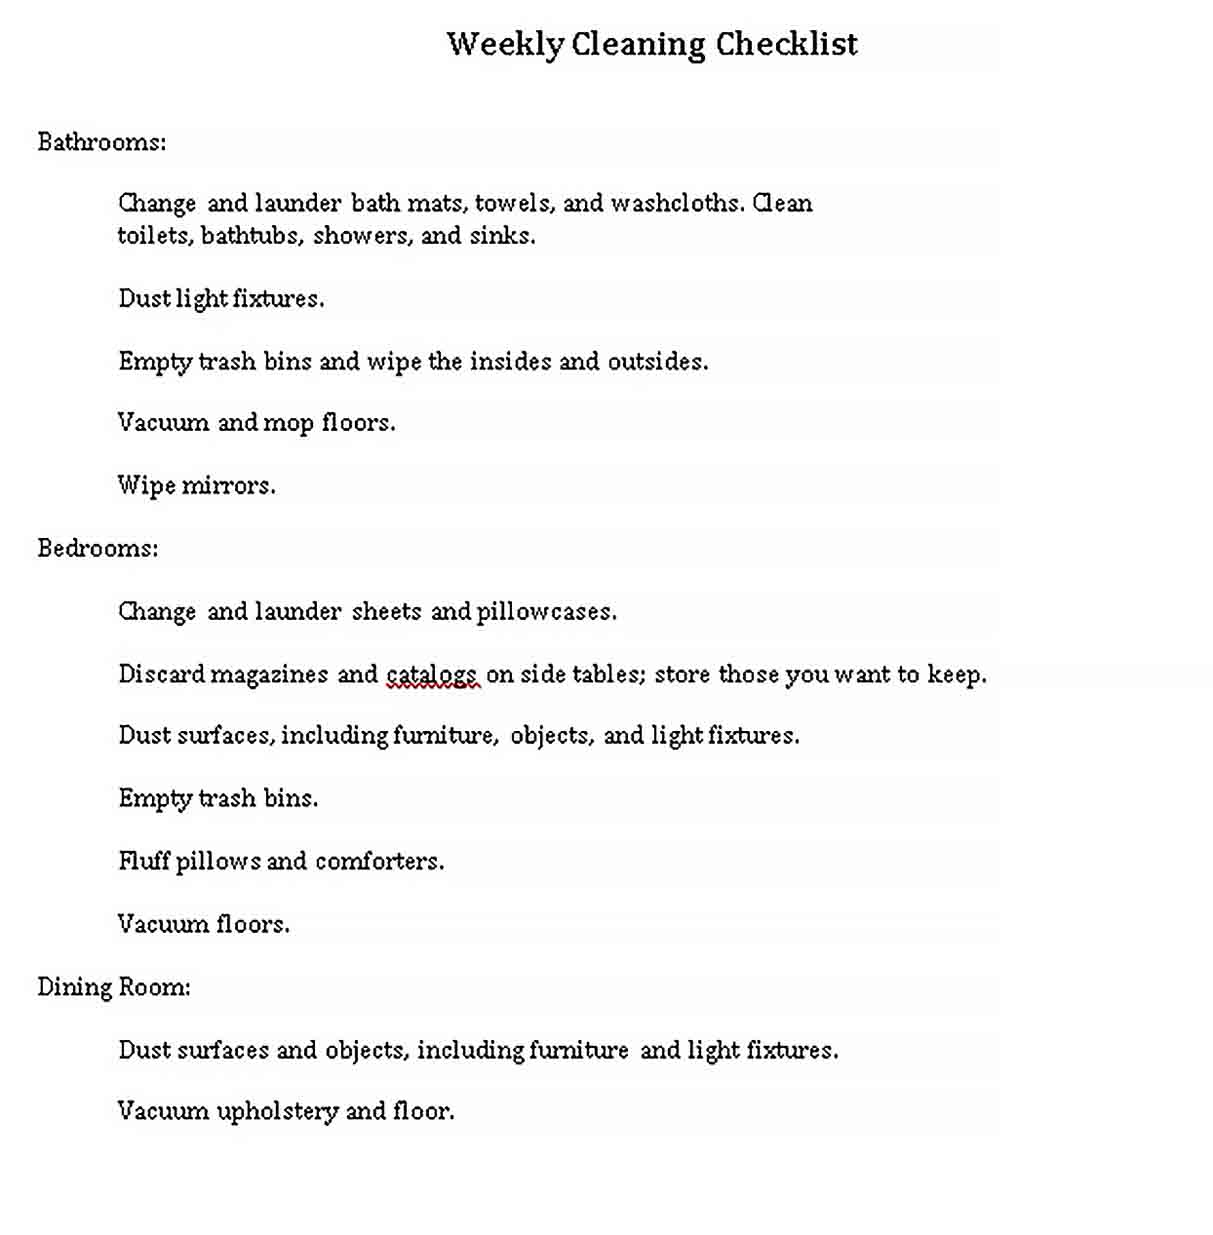 Template Cleaning Weekly Checklist Template